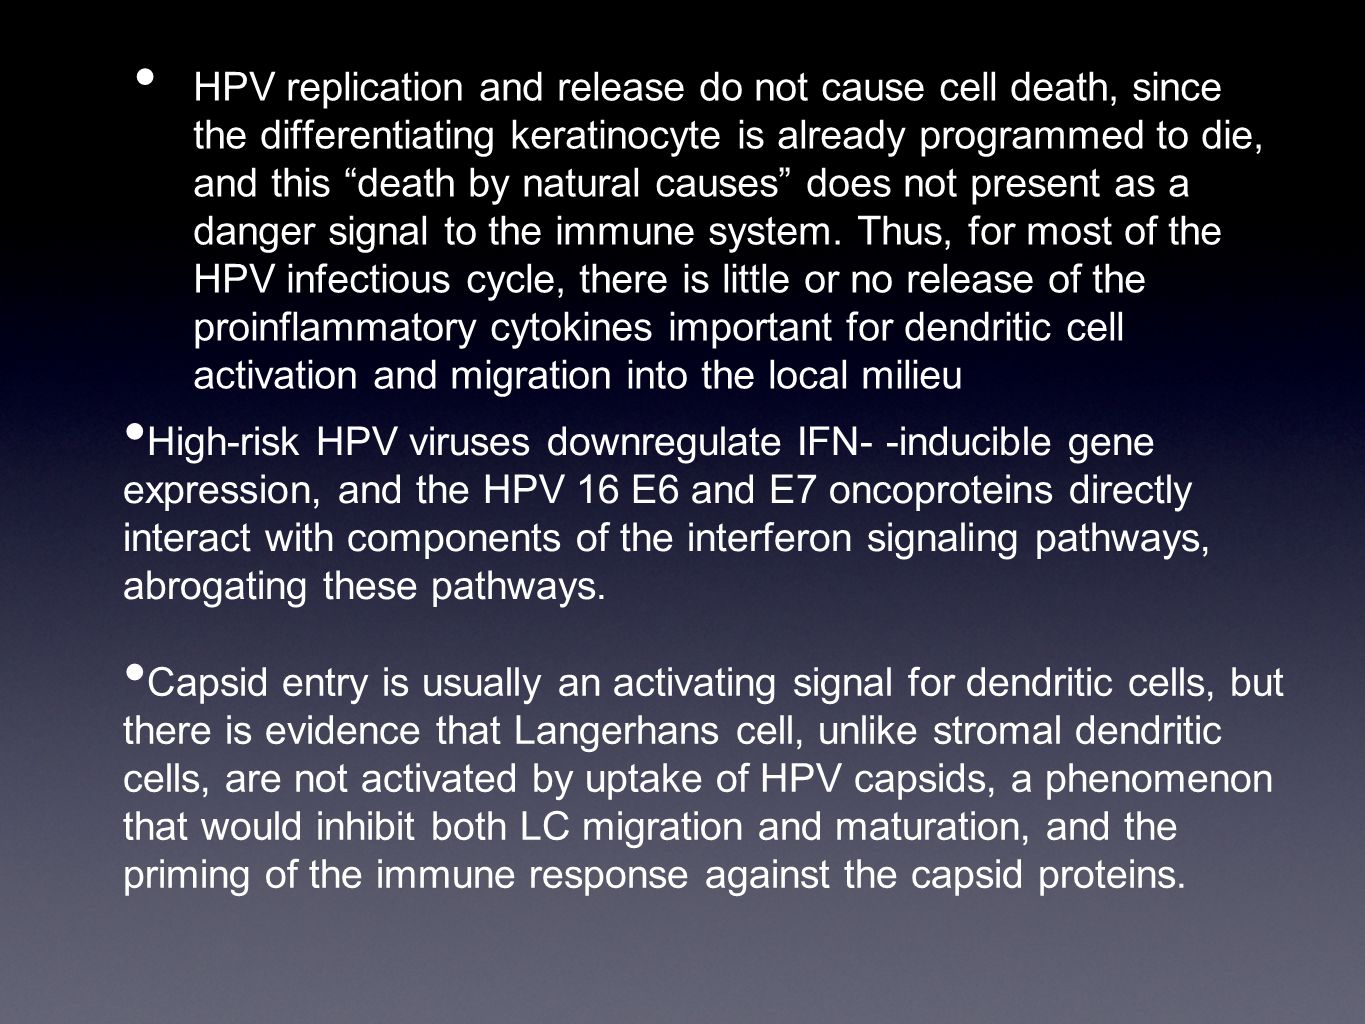 HPV replication and release do not cause cell death, since the differentiating keratinocyte is already programmed to die, and this death by natural causes does not present as a danger signal to the immune system.